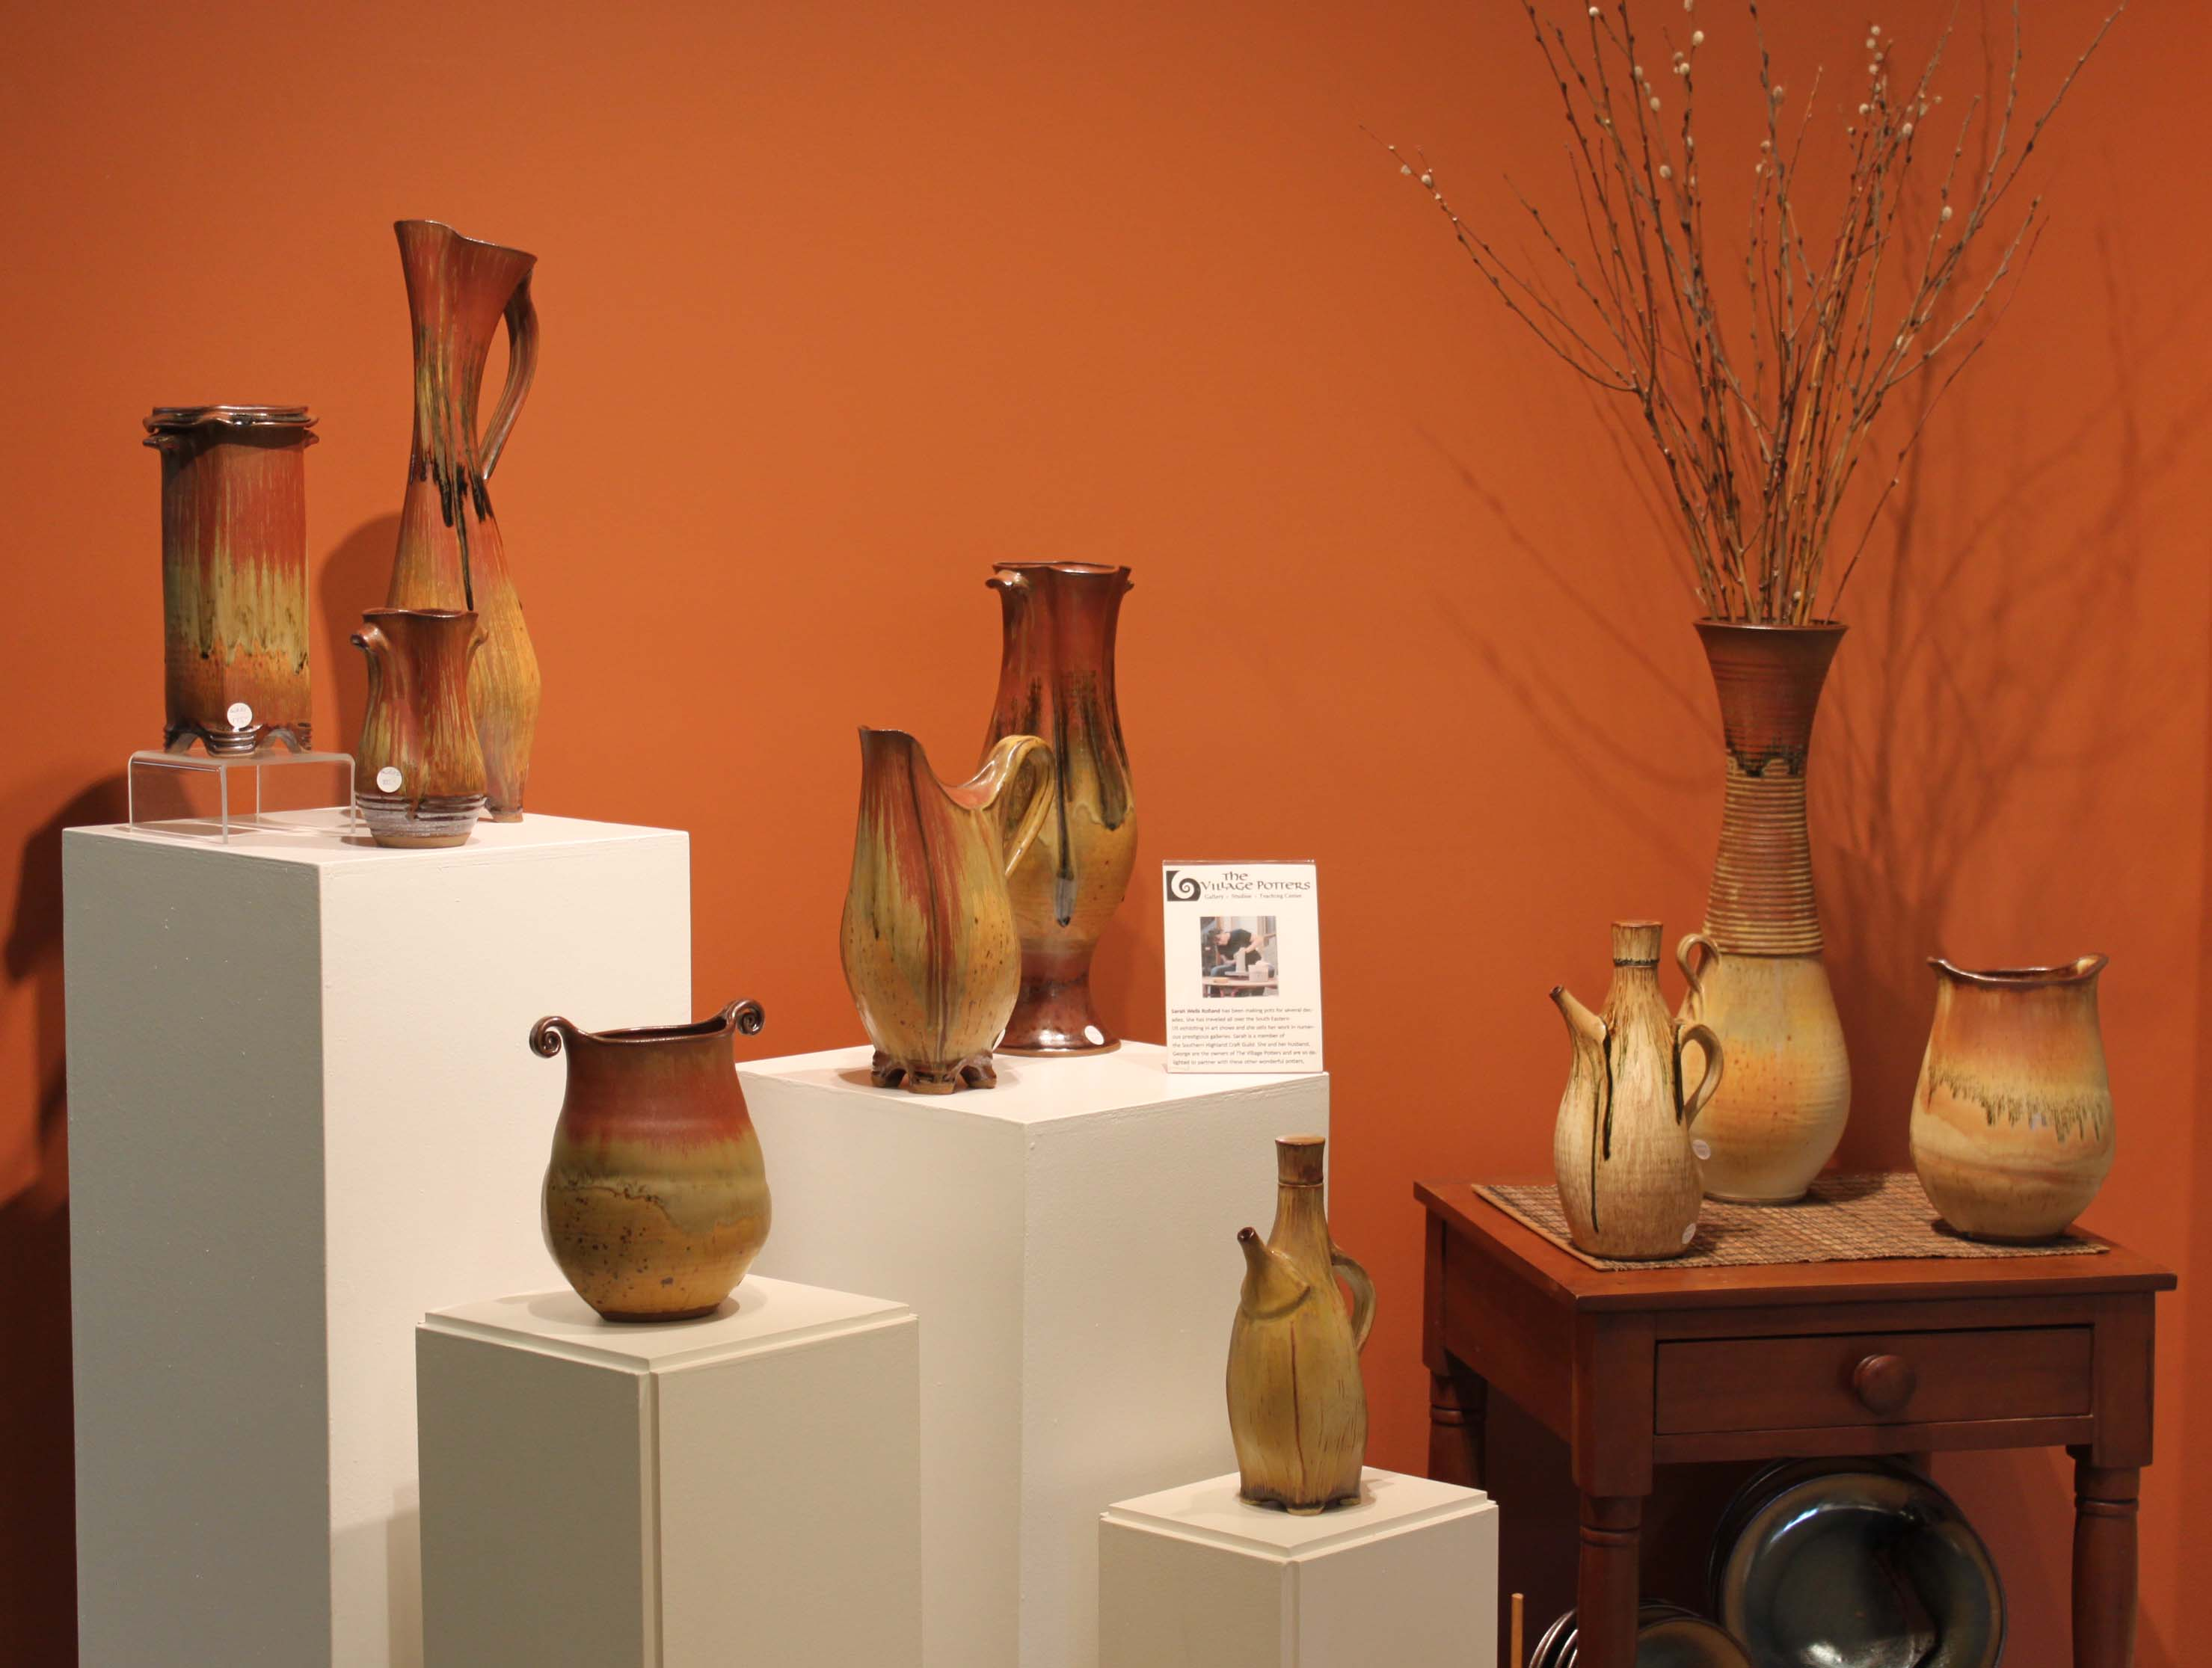 the village potters, asheville, nc, pottery, ceramics, raku, gallery, feature gallery, sarah wells rolland, judi harwood